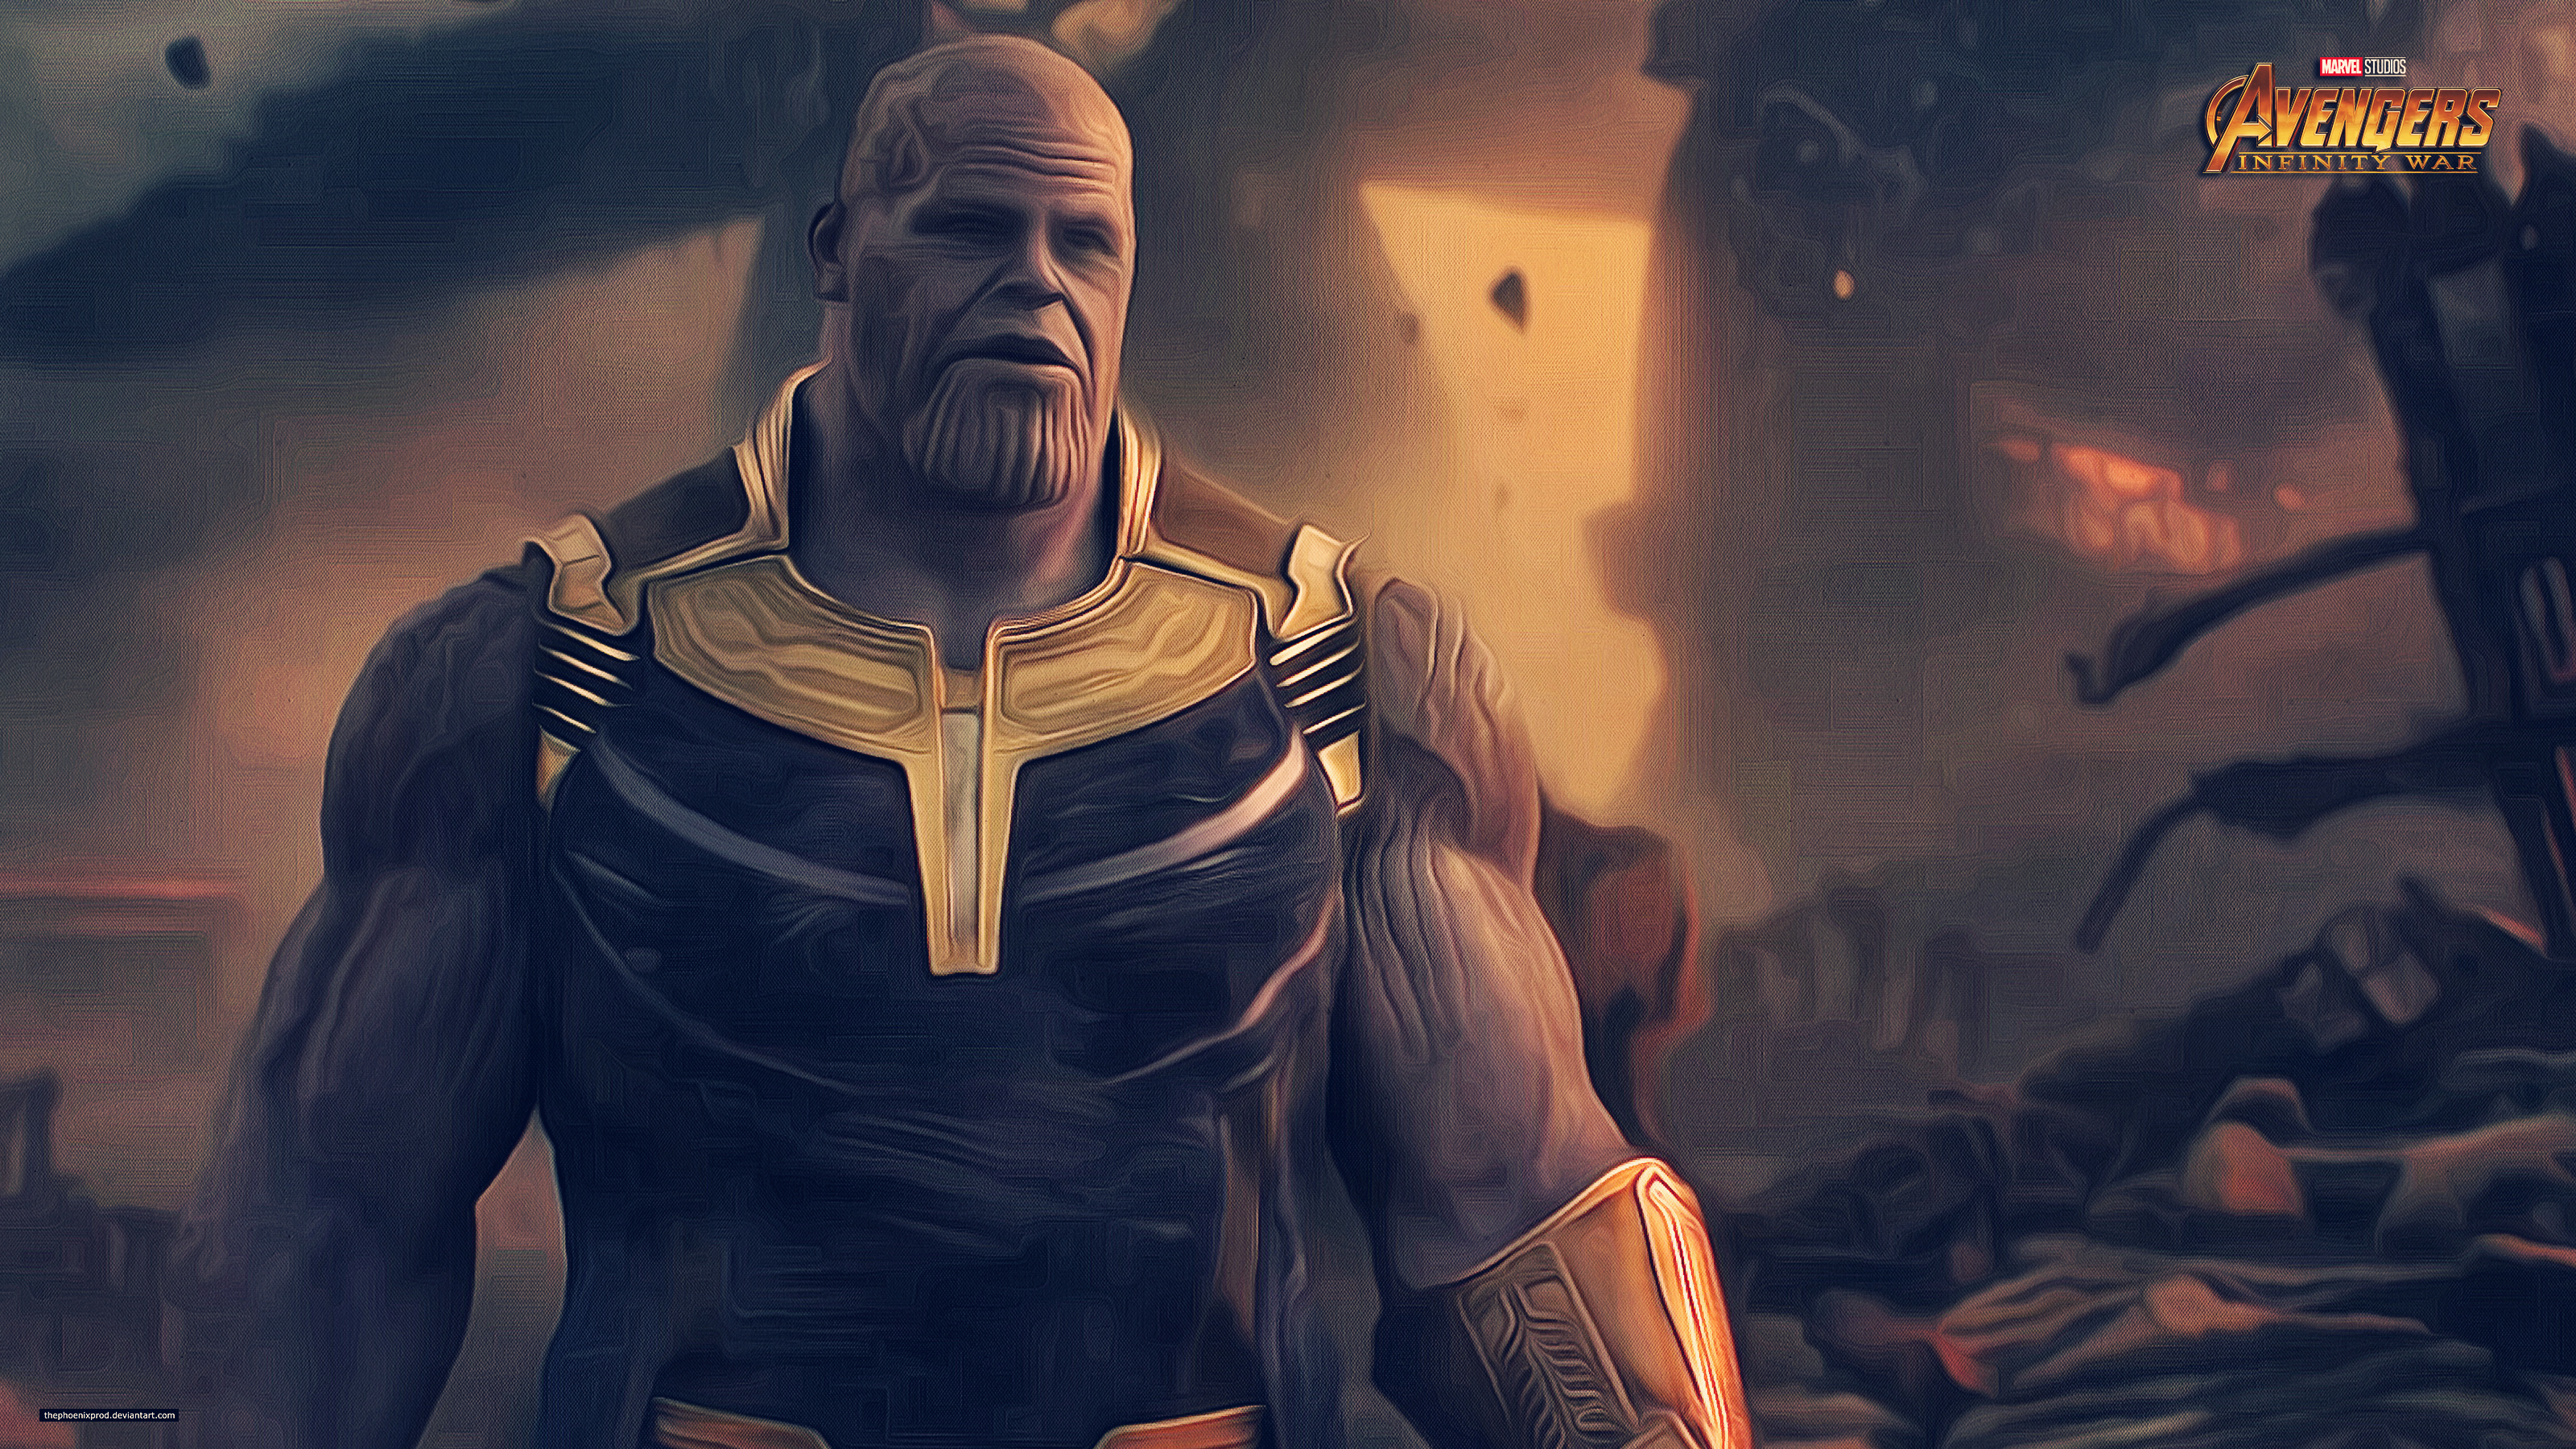 Thanos Hd Wallpaper: Thanos Avengers Infinity War 2018 4k Artwork, HD Movies